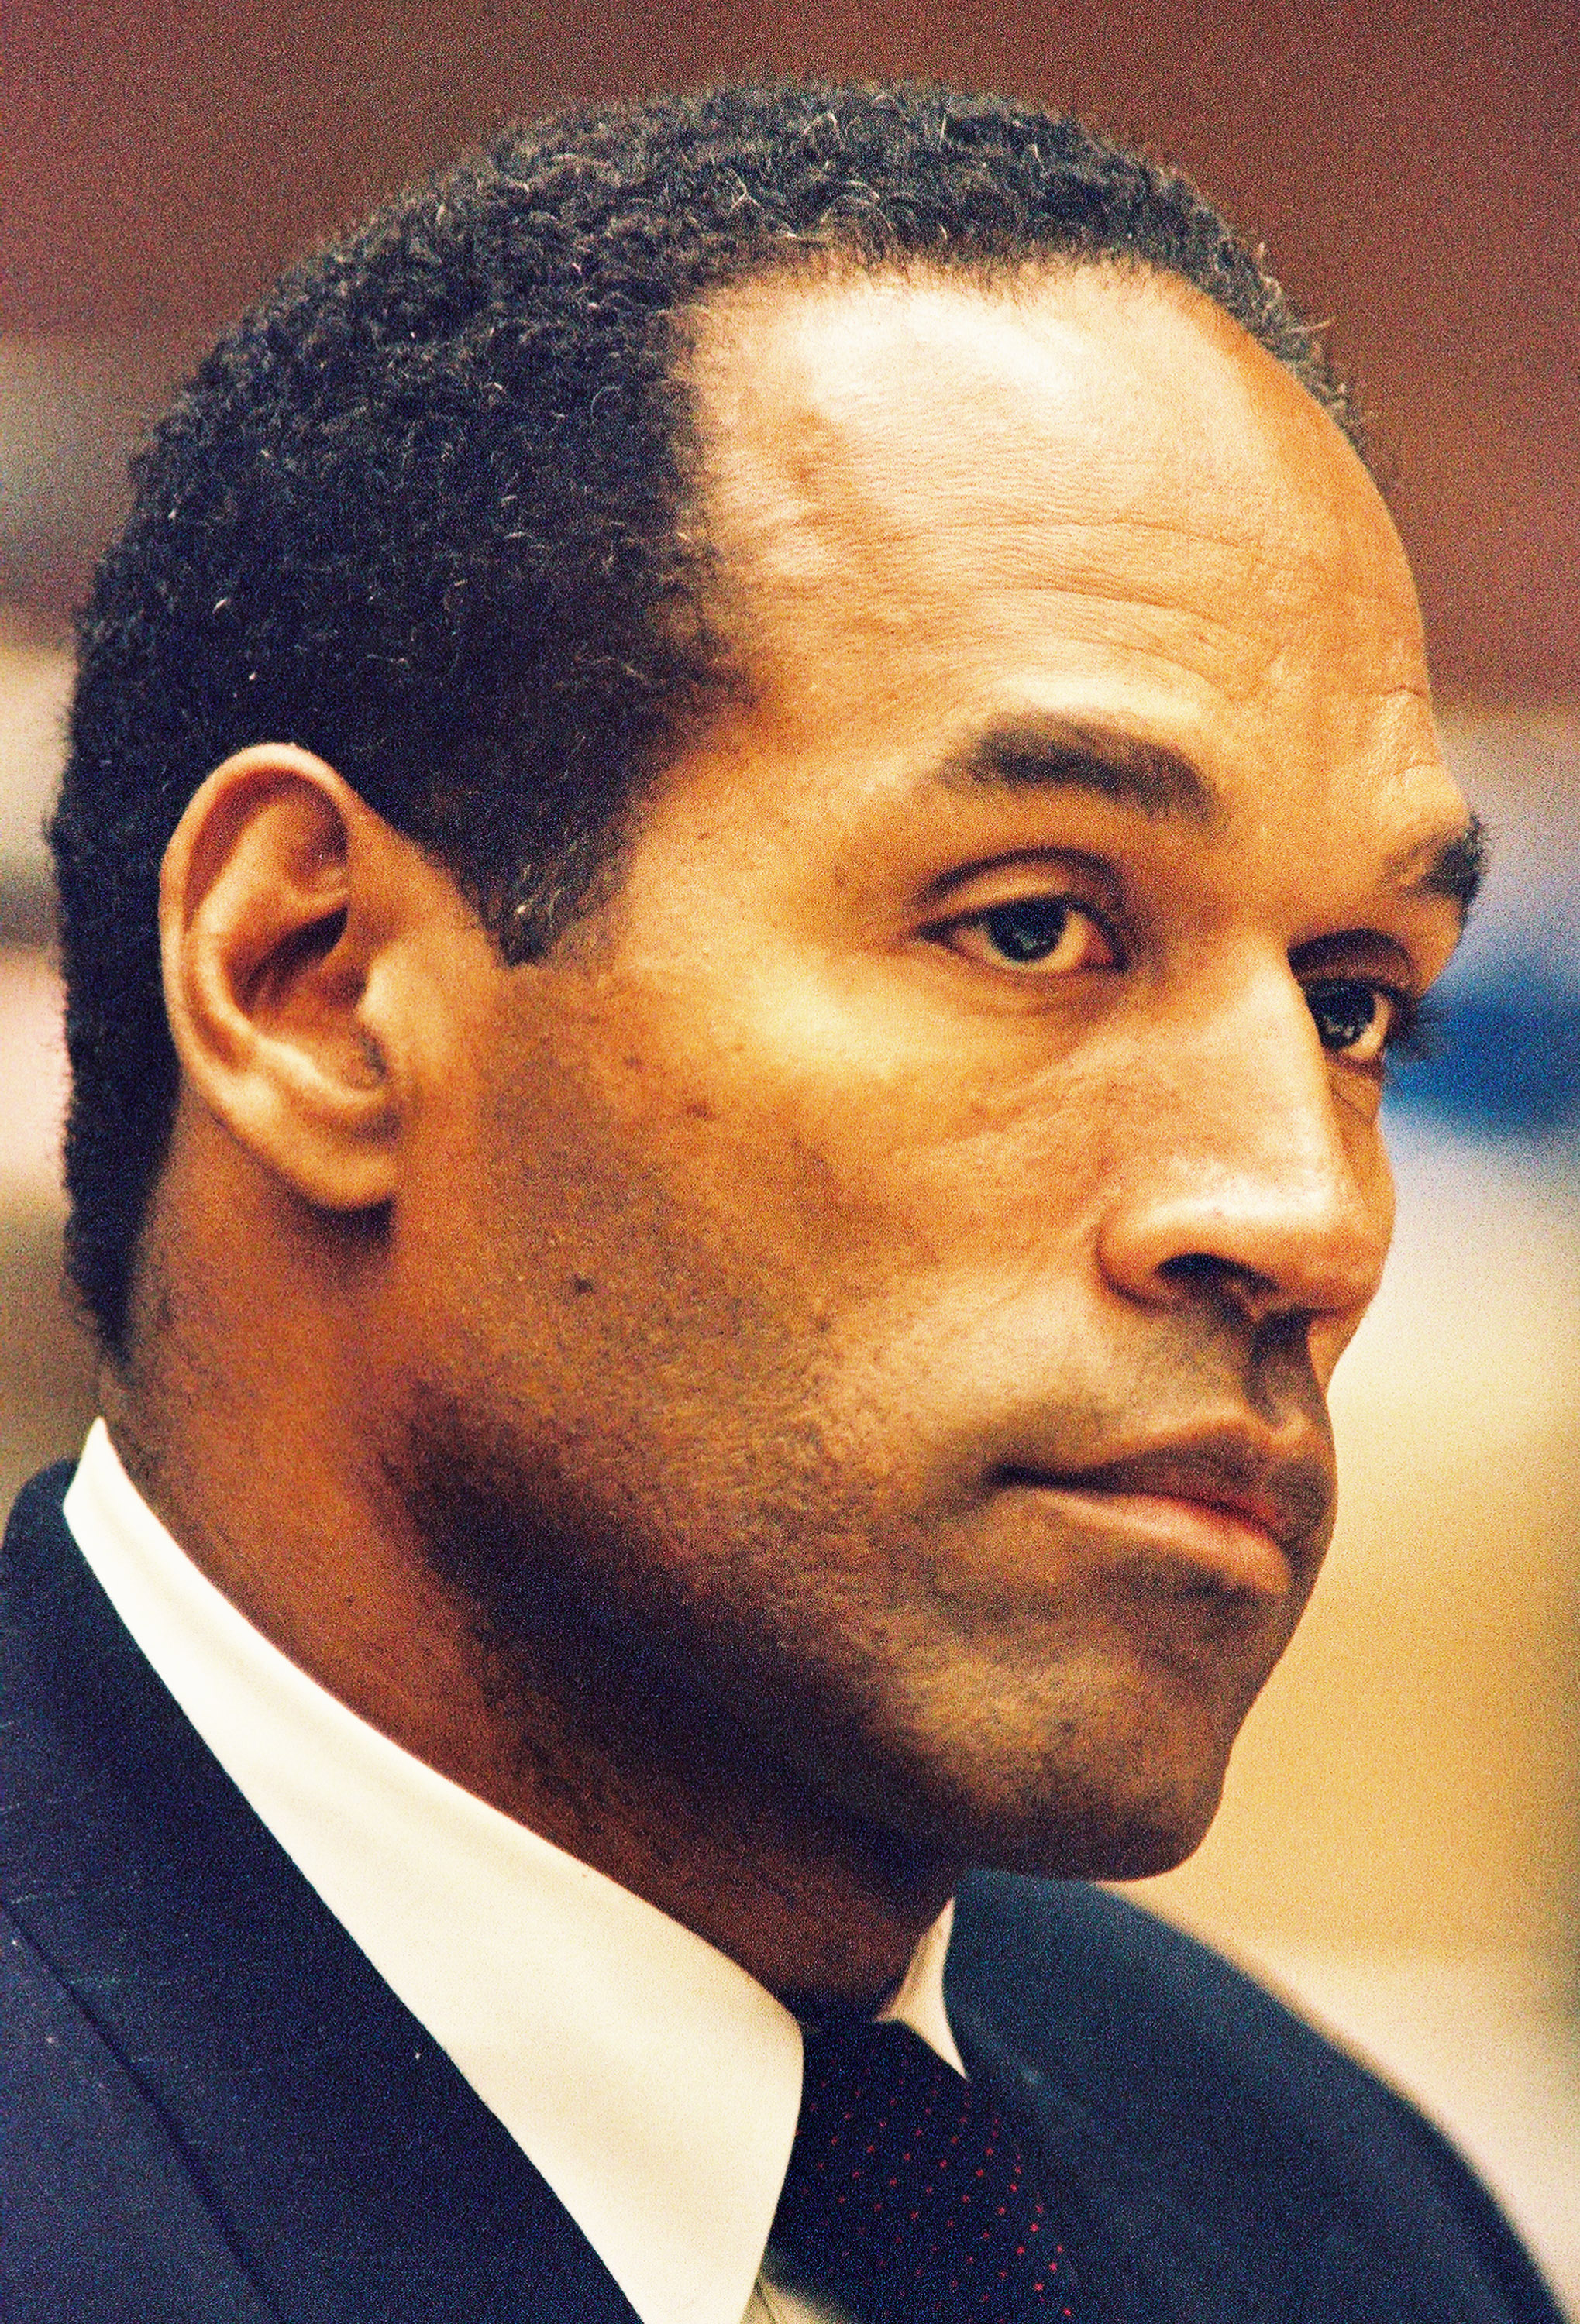 O.J. Simpson is shown during testimony in a preliminary hearing following the murders of his ex-wife Nicole Brown Simpson and her friend Ronald Goldman July 7, 1994 in Los Angeles. (Photo by Lee Celano/WireImage)